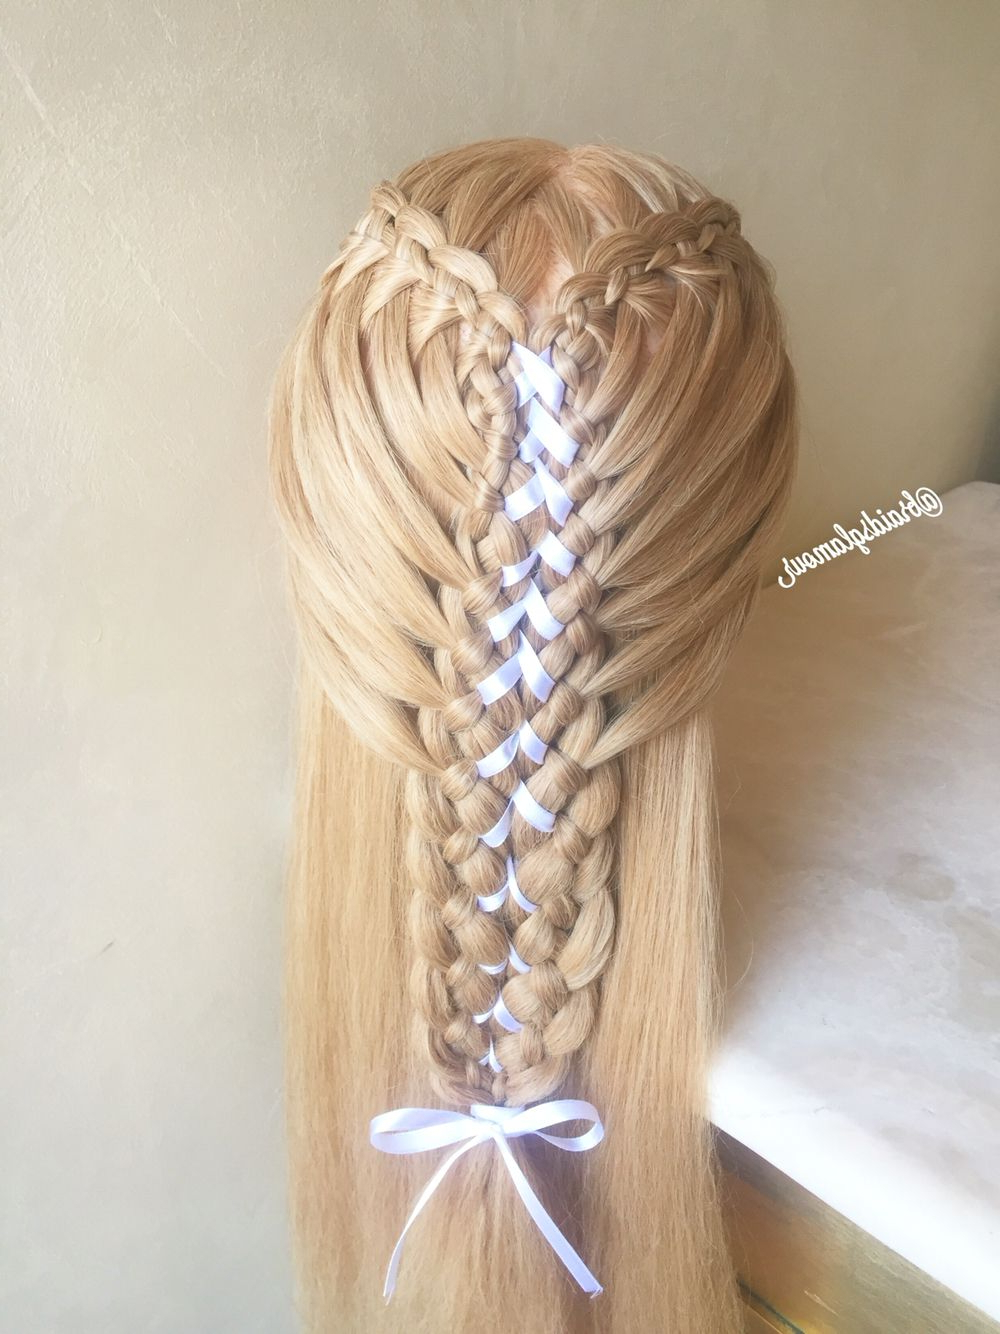 2020 Corset Braid Hairstyles Inside Four Strand Waterfall Braids Into Corset Braid (View 1 of 20)